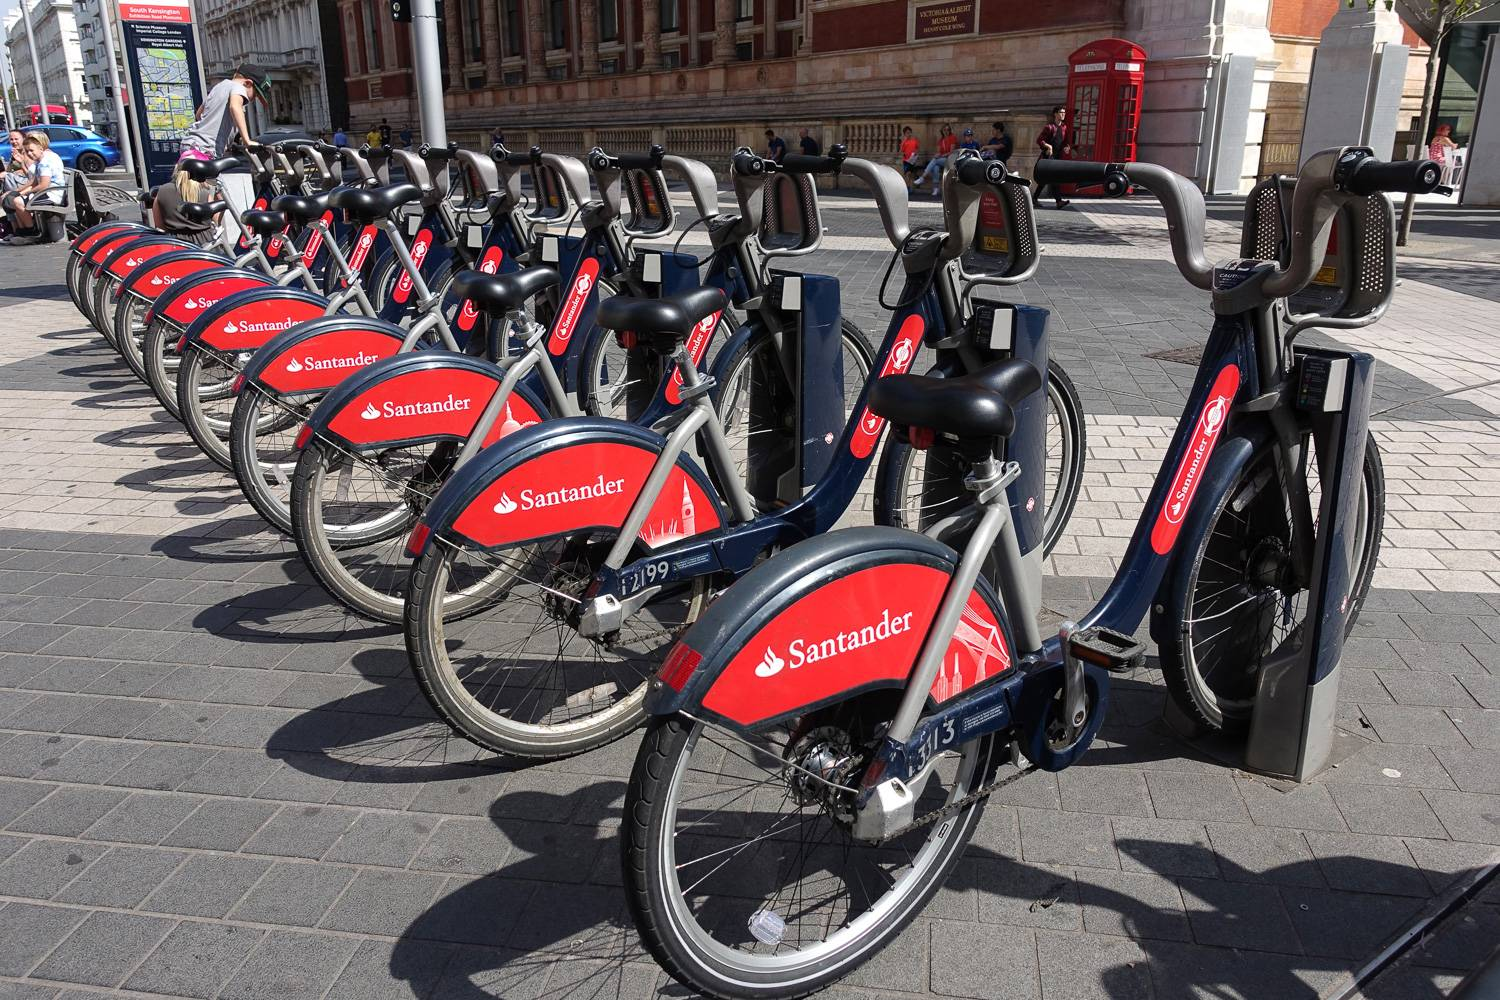 Image of red Santander Cycles lined up at a docking station in London.